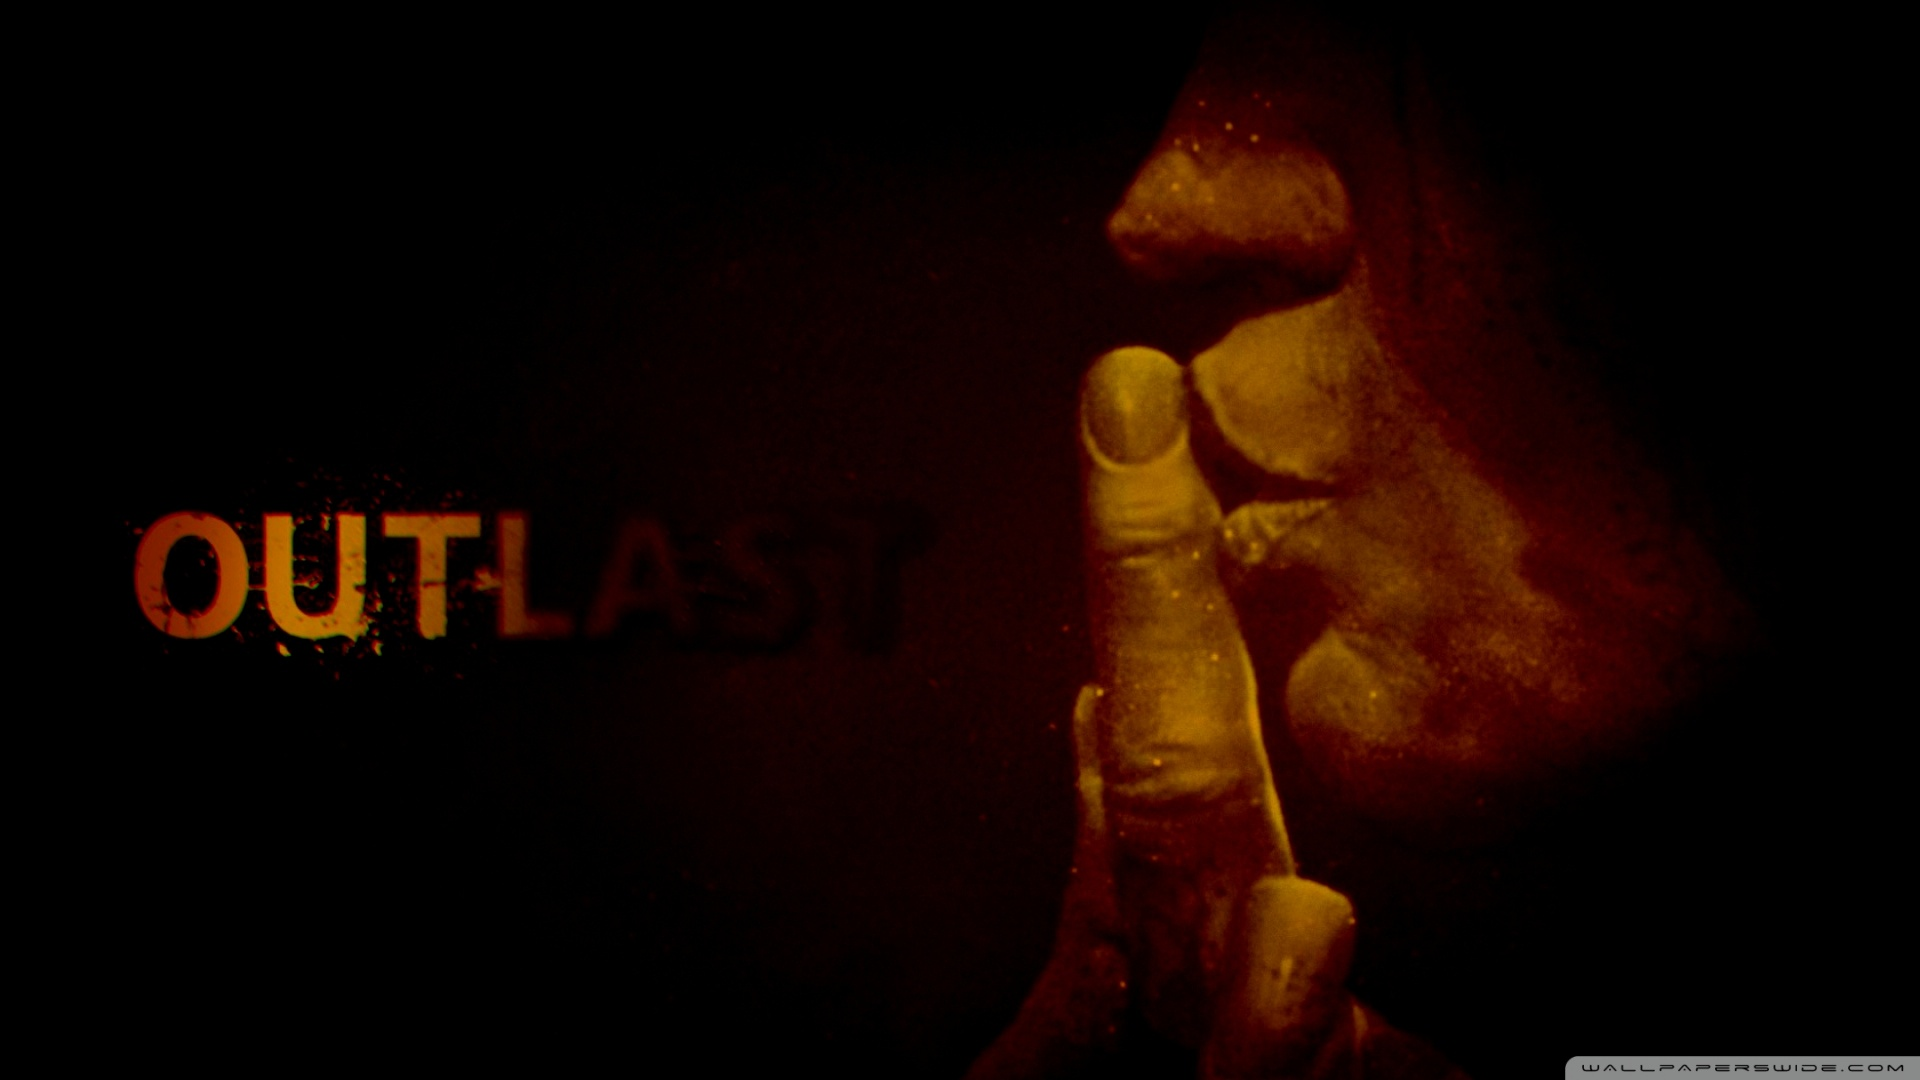 1920x1080 - Outlast HD Wallpapers 31